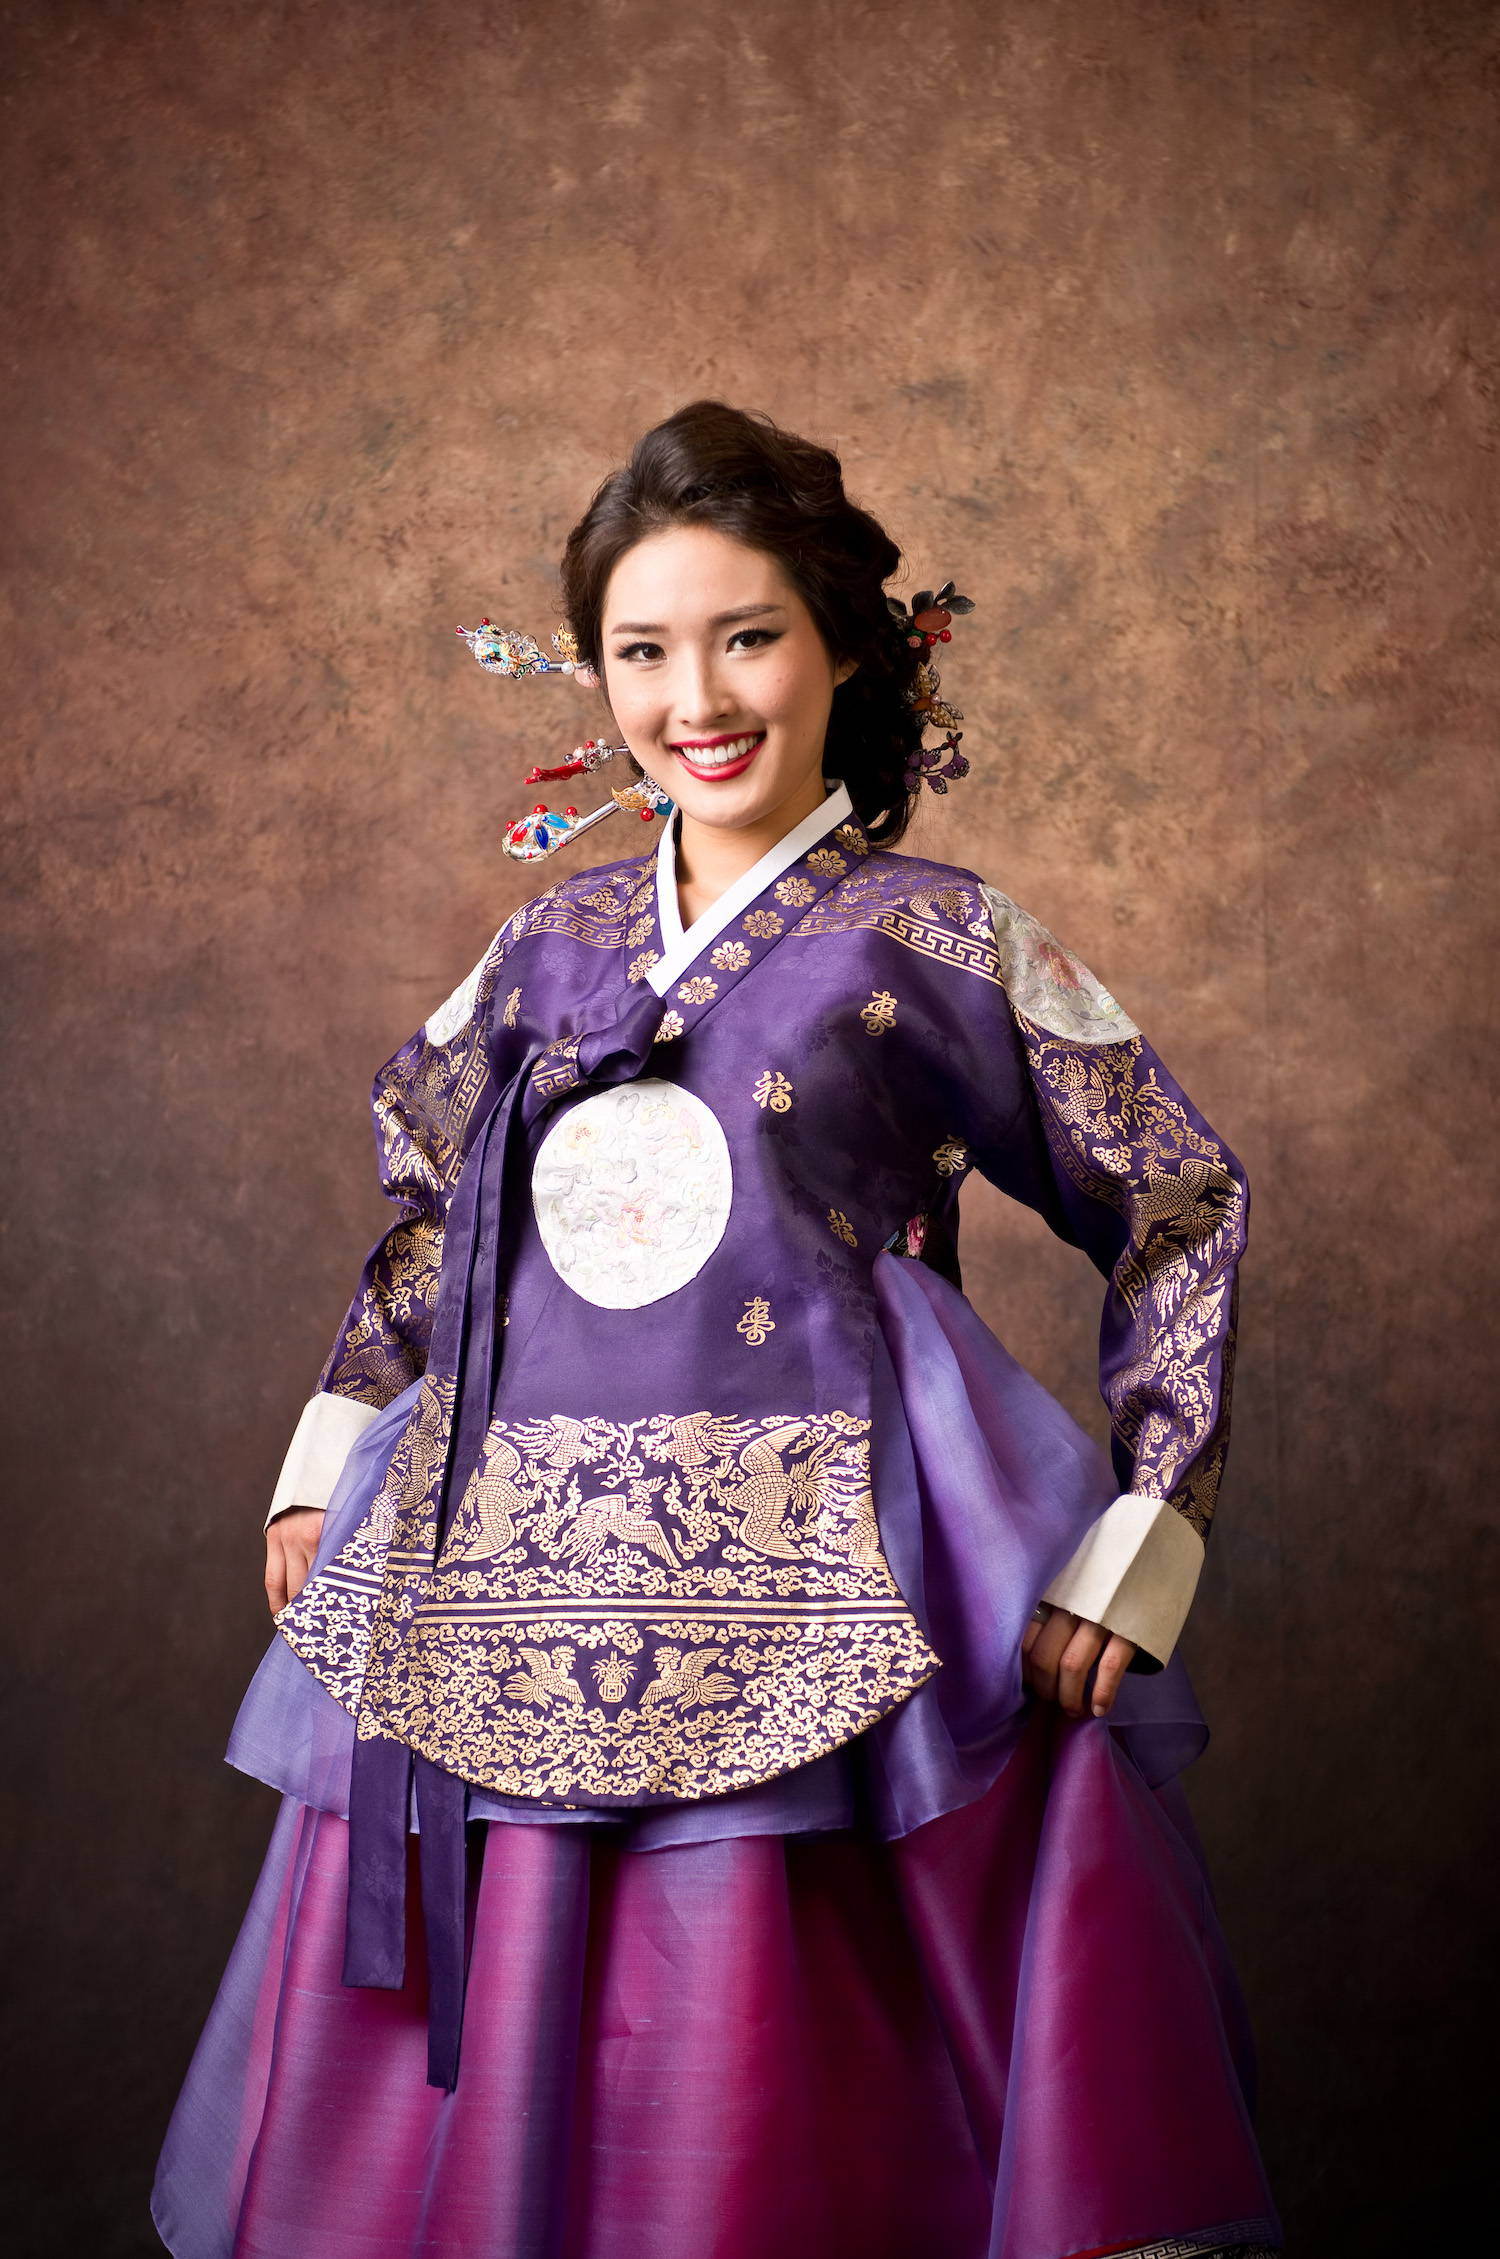 Gradient silk modern hanbok dress